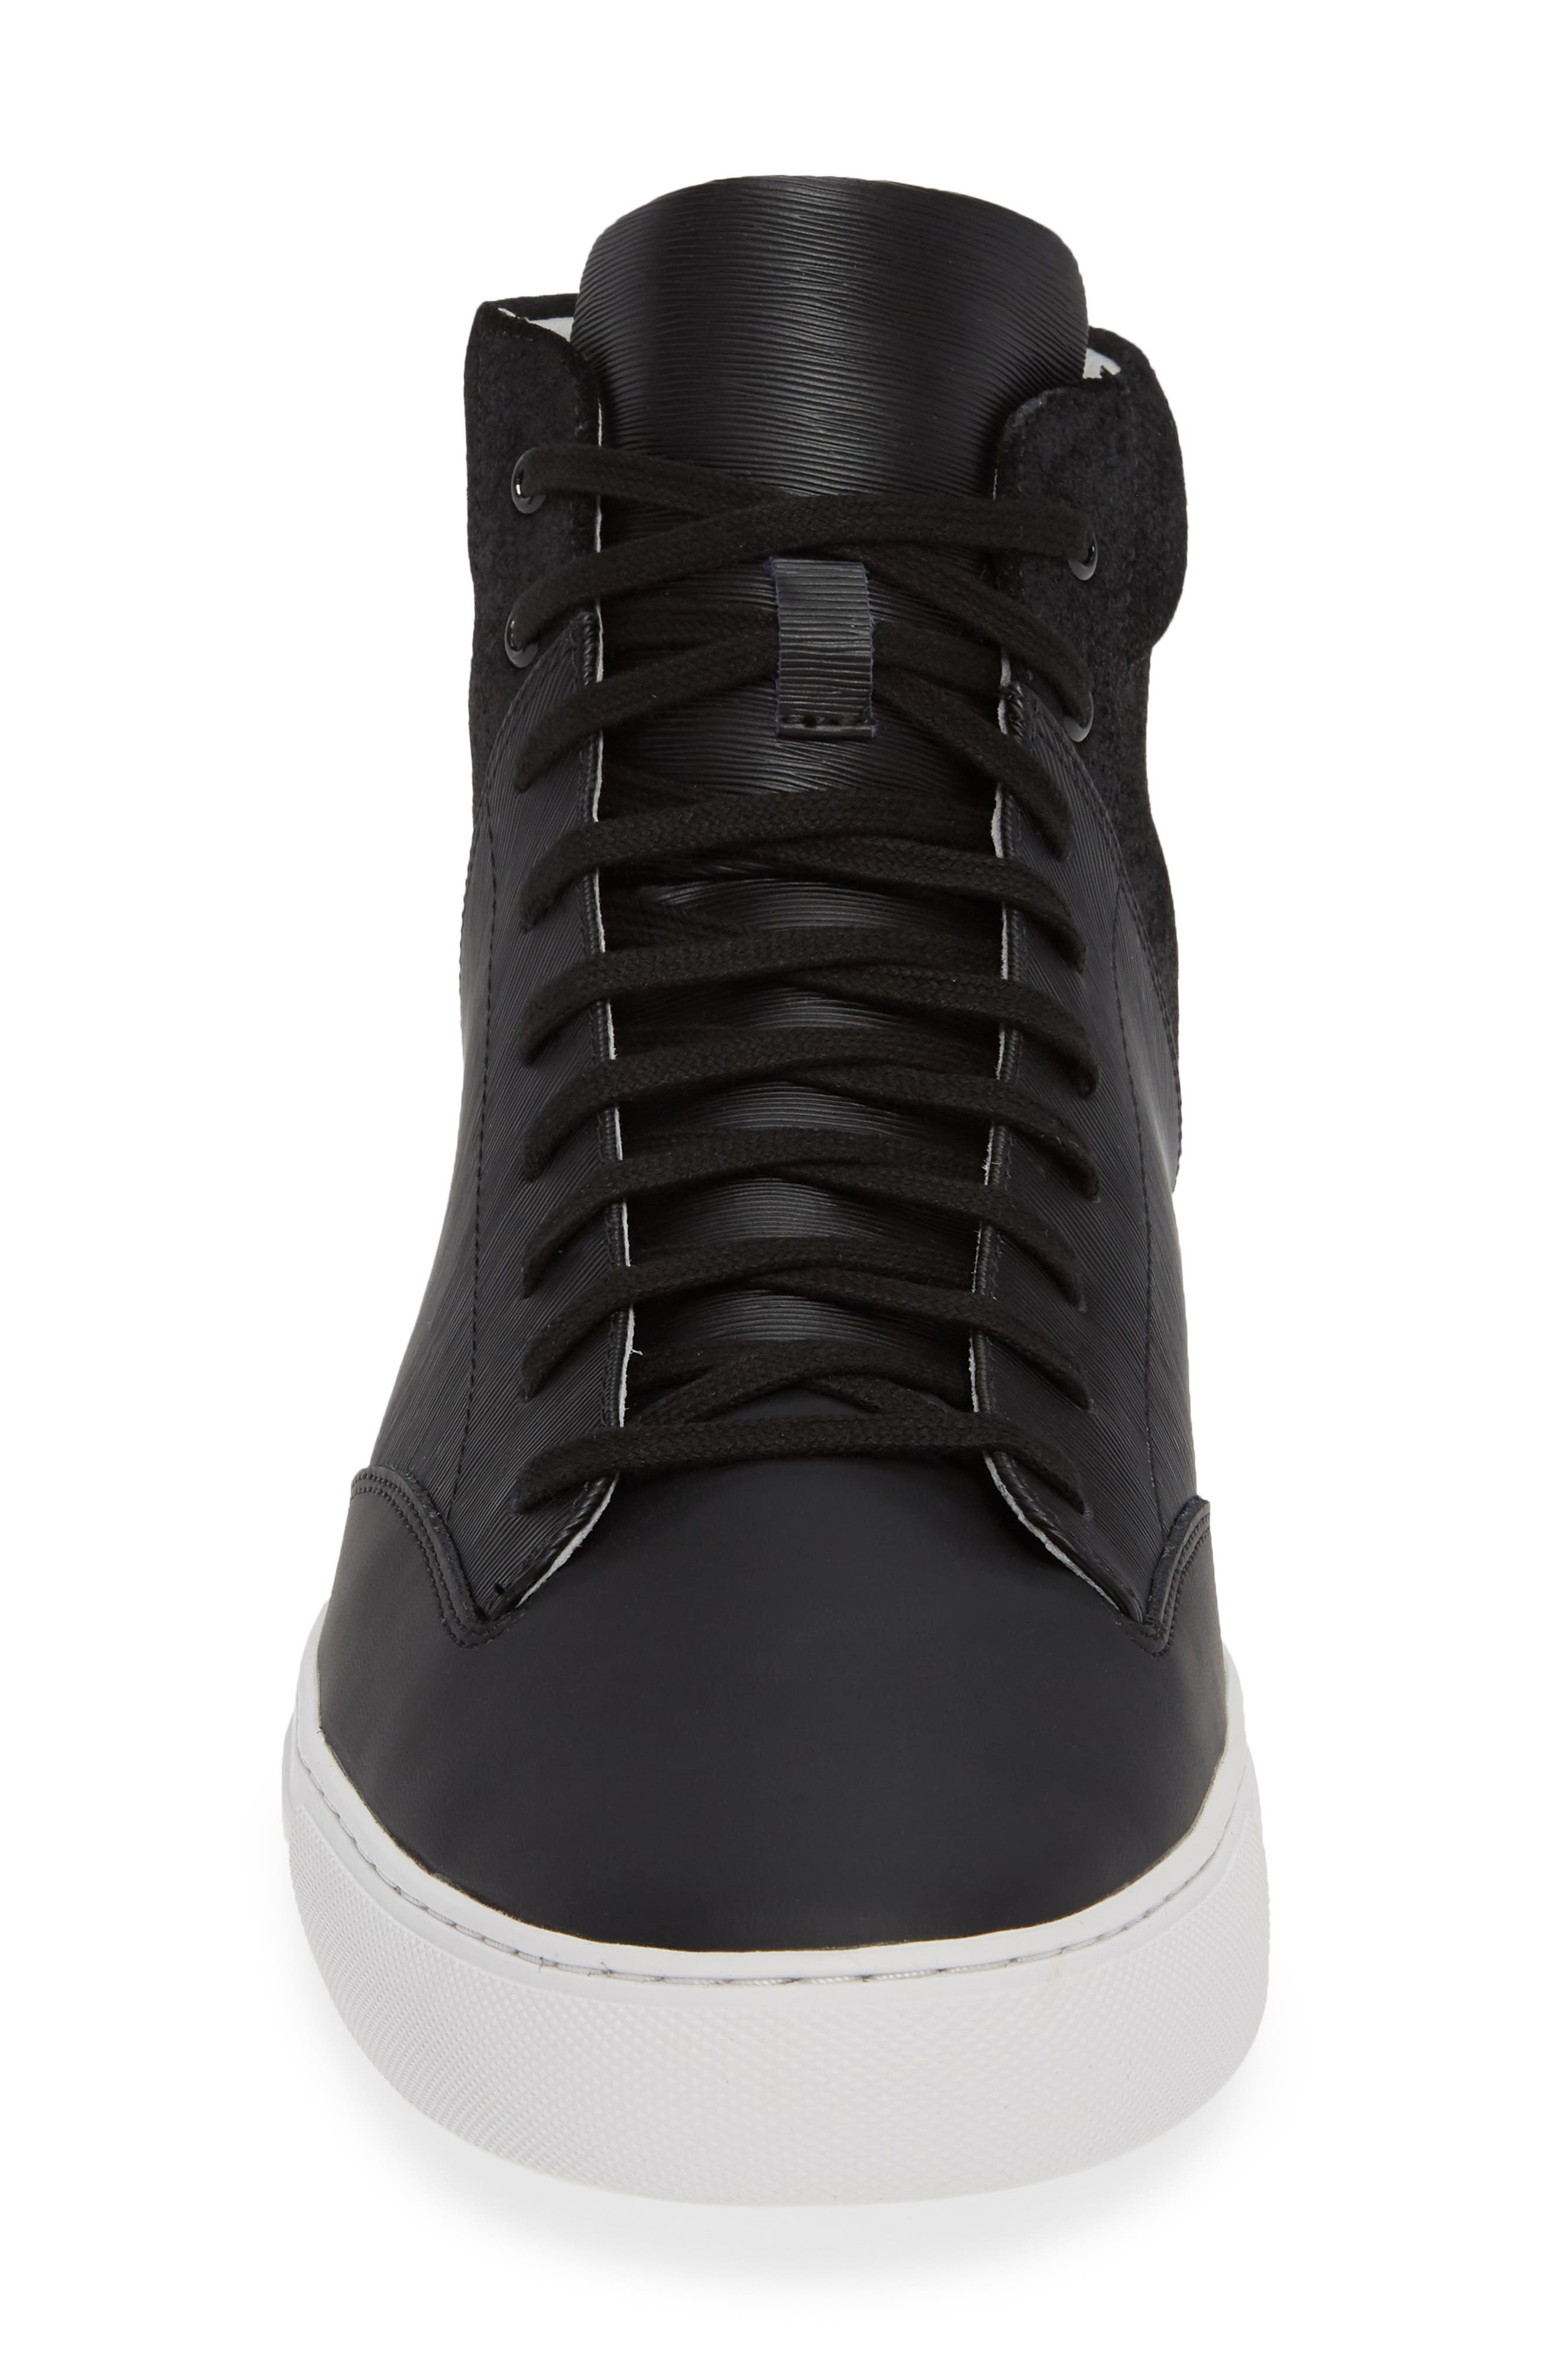 'Porter' High Top Sneaker,                             Alternate thumbnail 4, color,                             BLACK SUEDE/ LEATHER